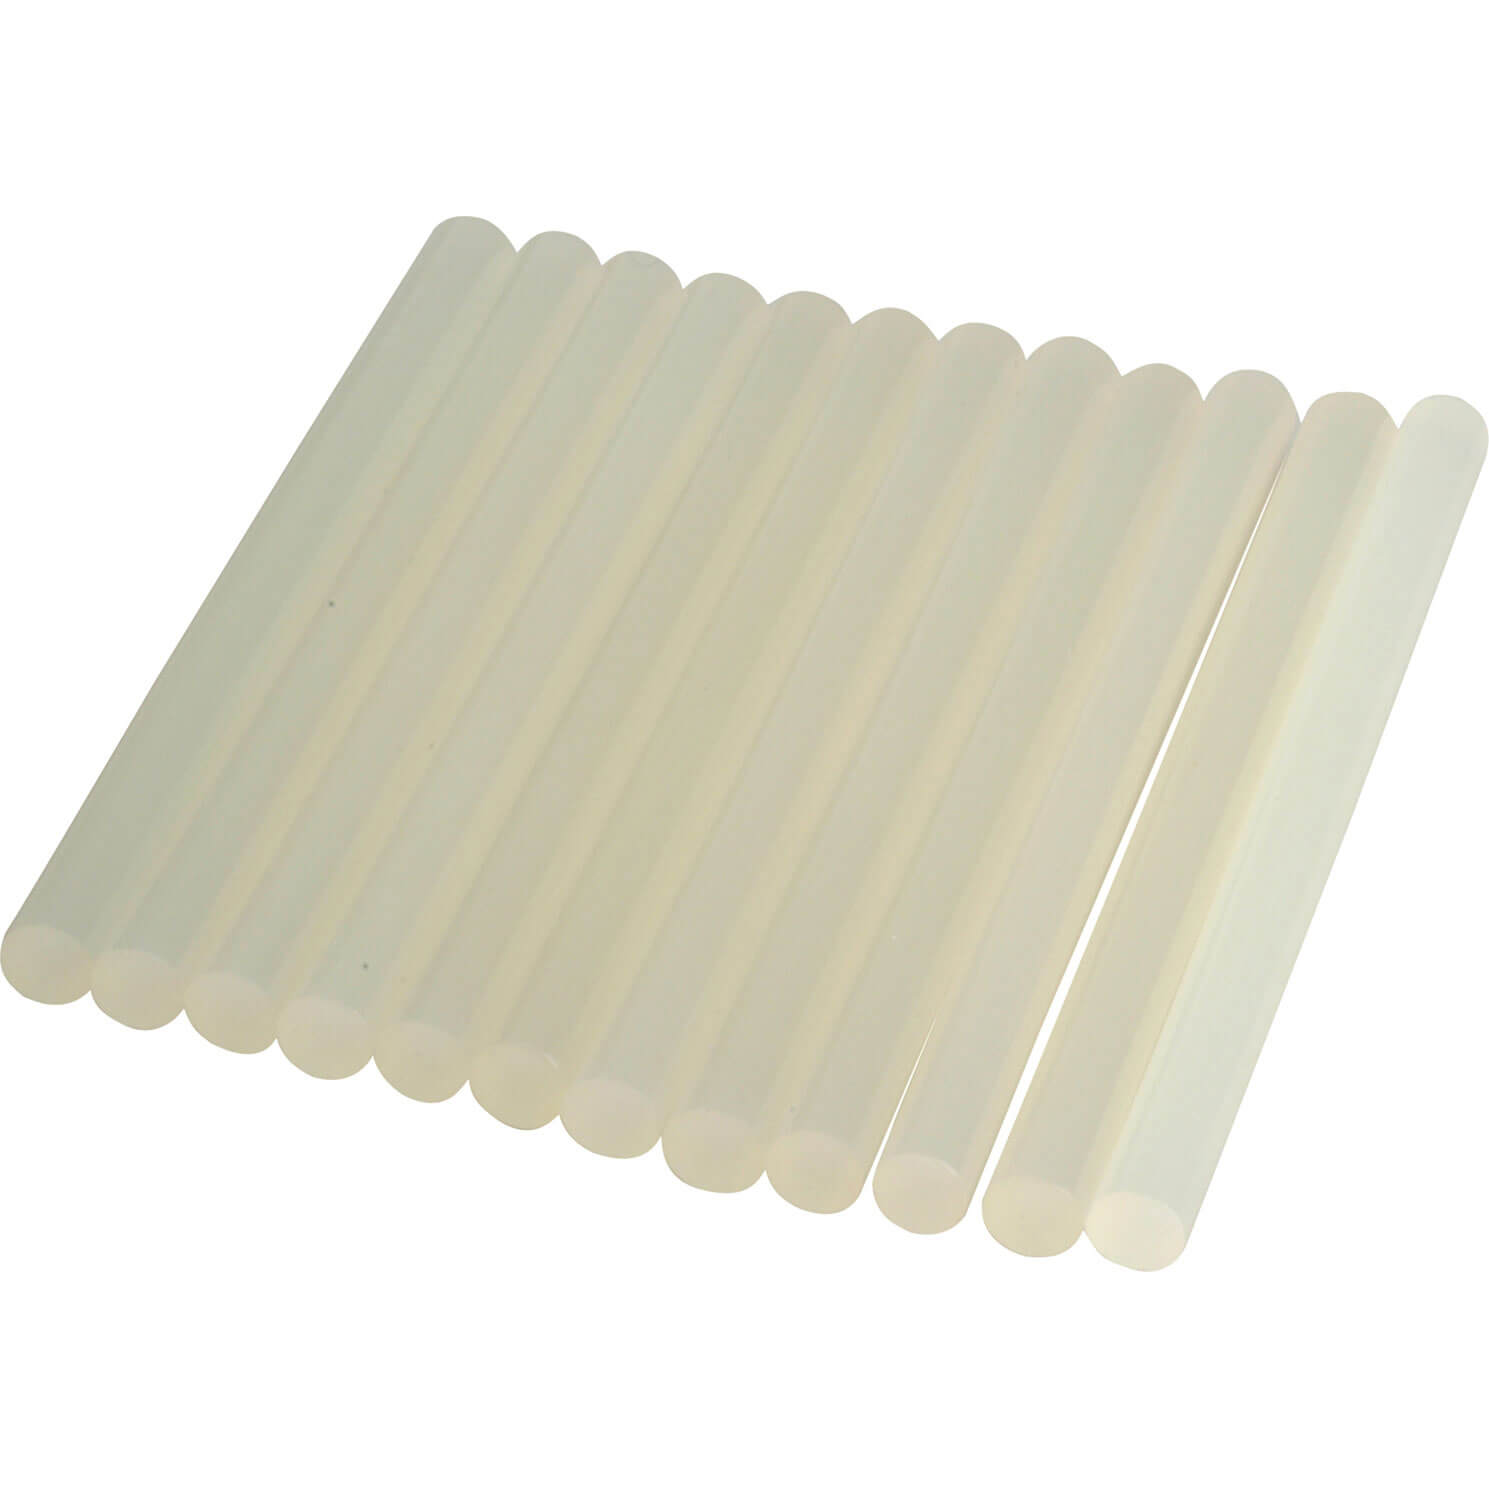 Image of Arrow All Purpose Glue Sticks 8mm 102mm Pack of 12